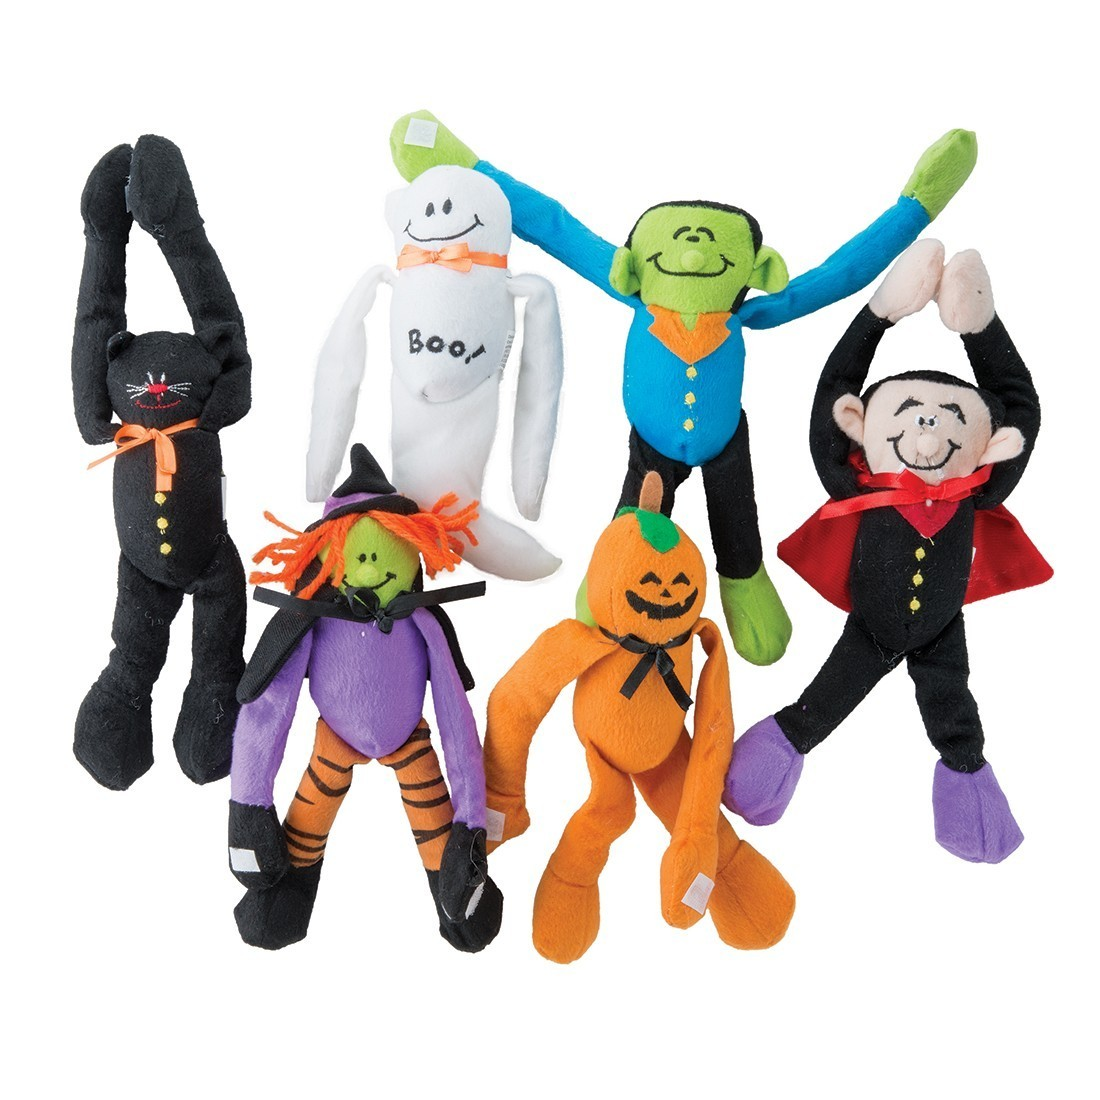 Plush Long Arm Halloween Characters - Plush Toys from SmileMakers